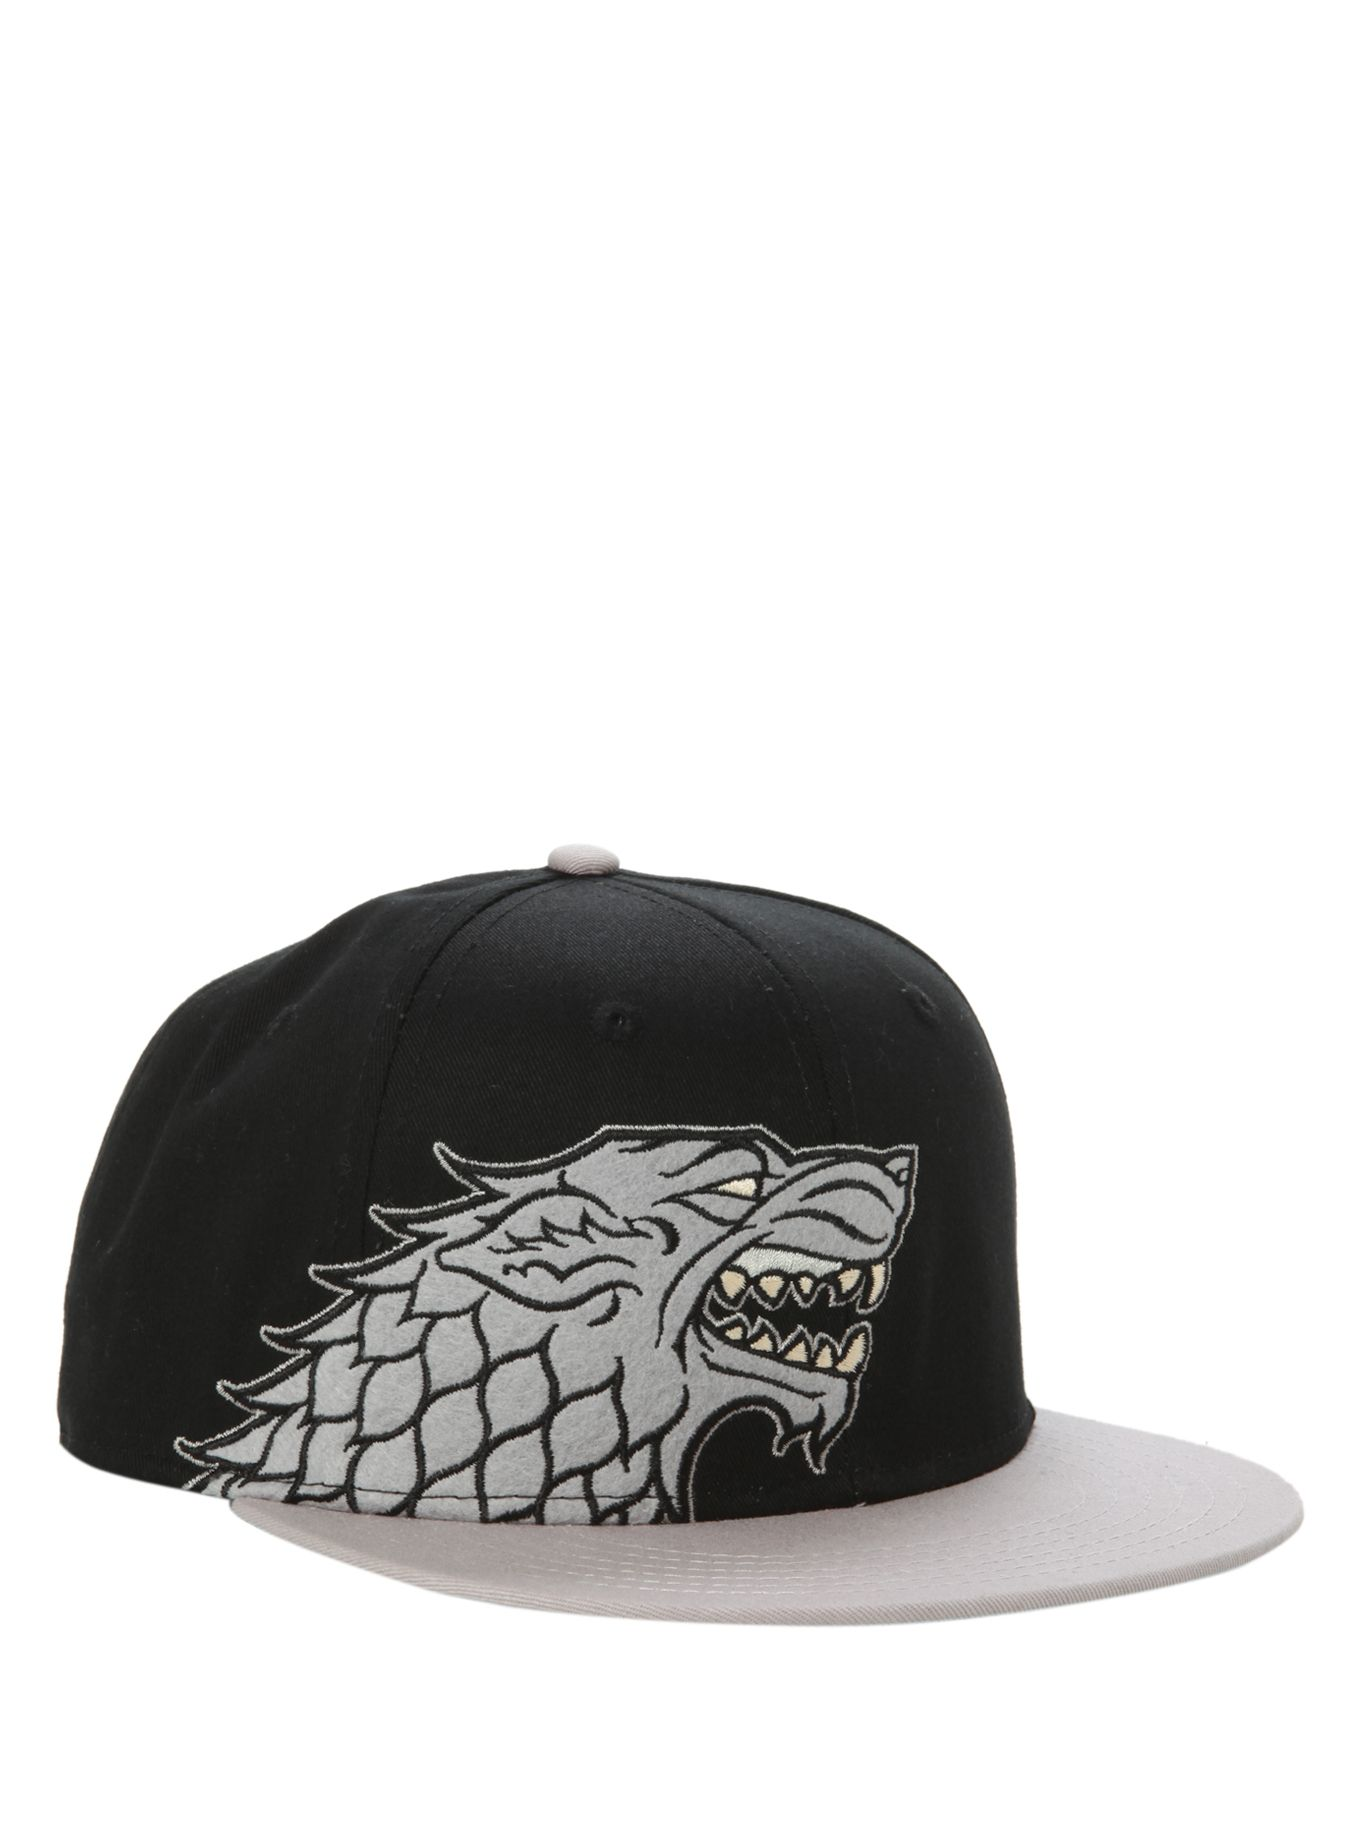 Game Of Thrones House Stark Snapback Ball Cap  54fbd528f65